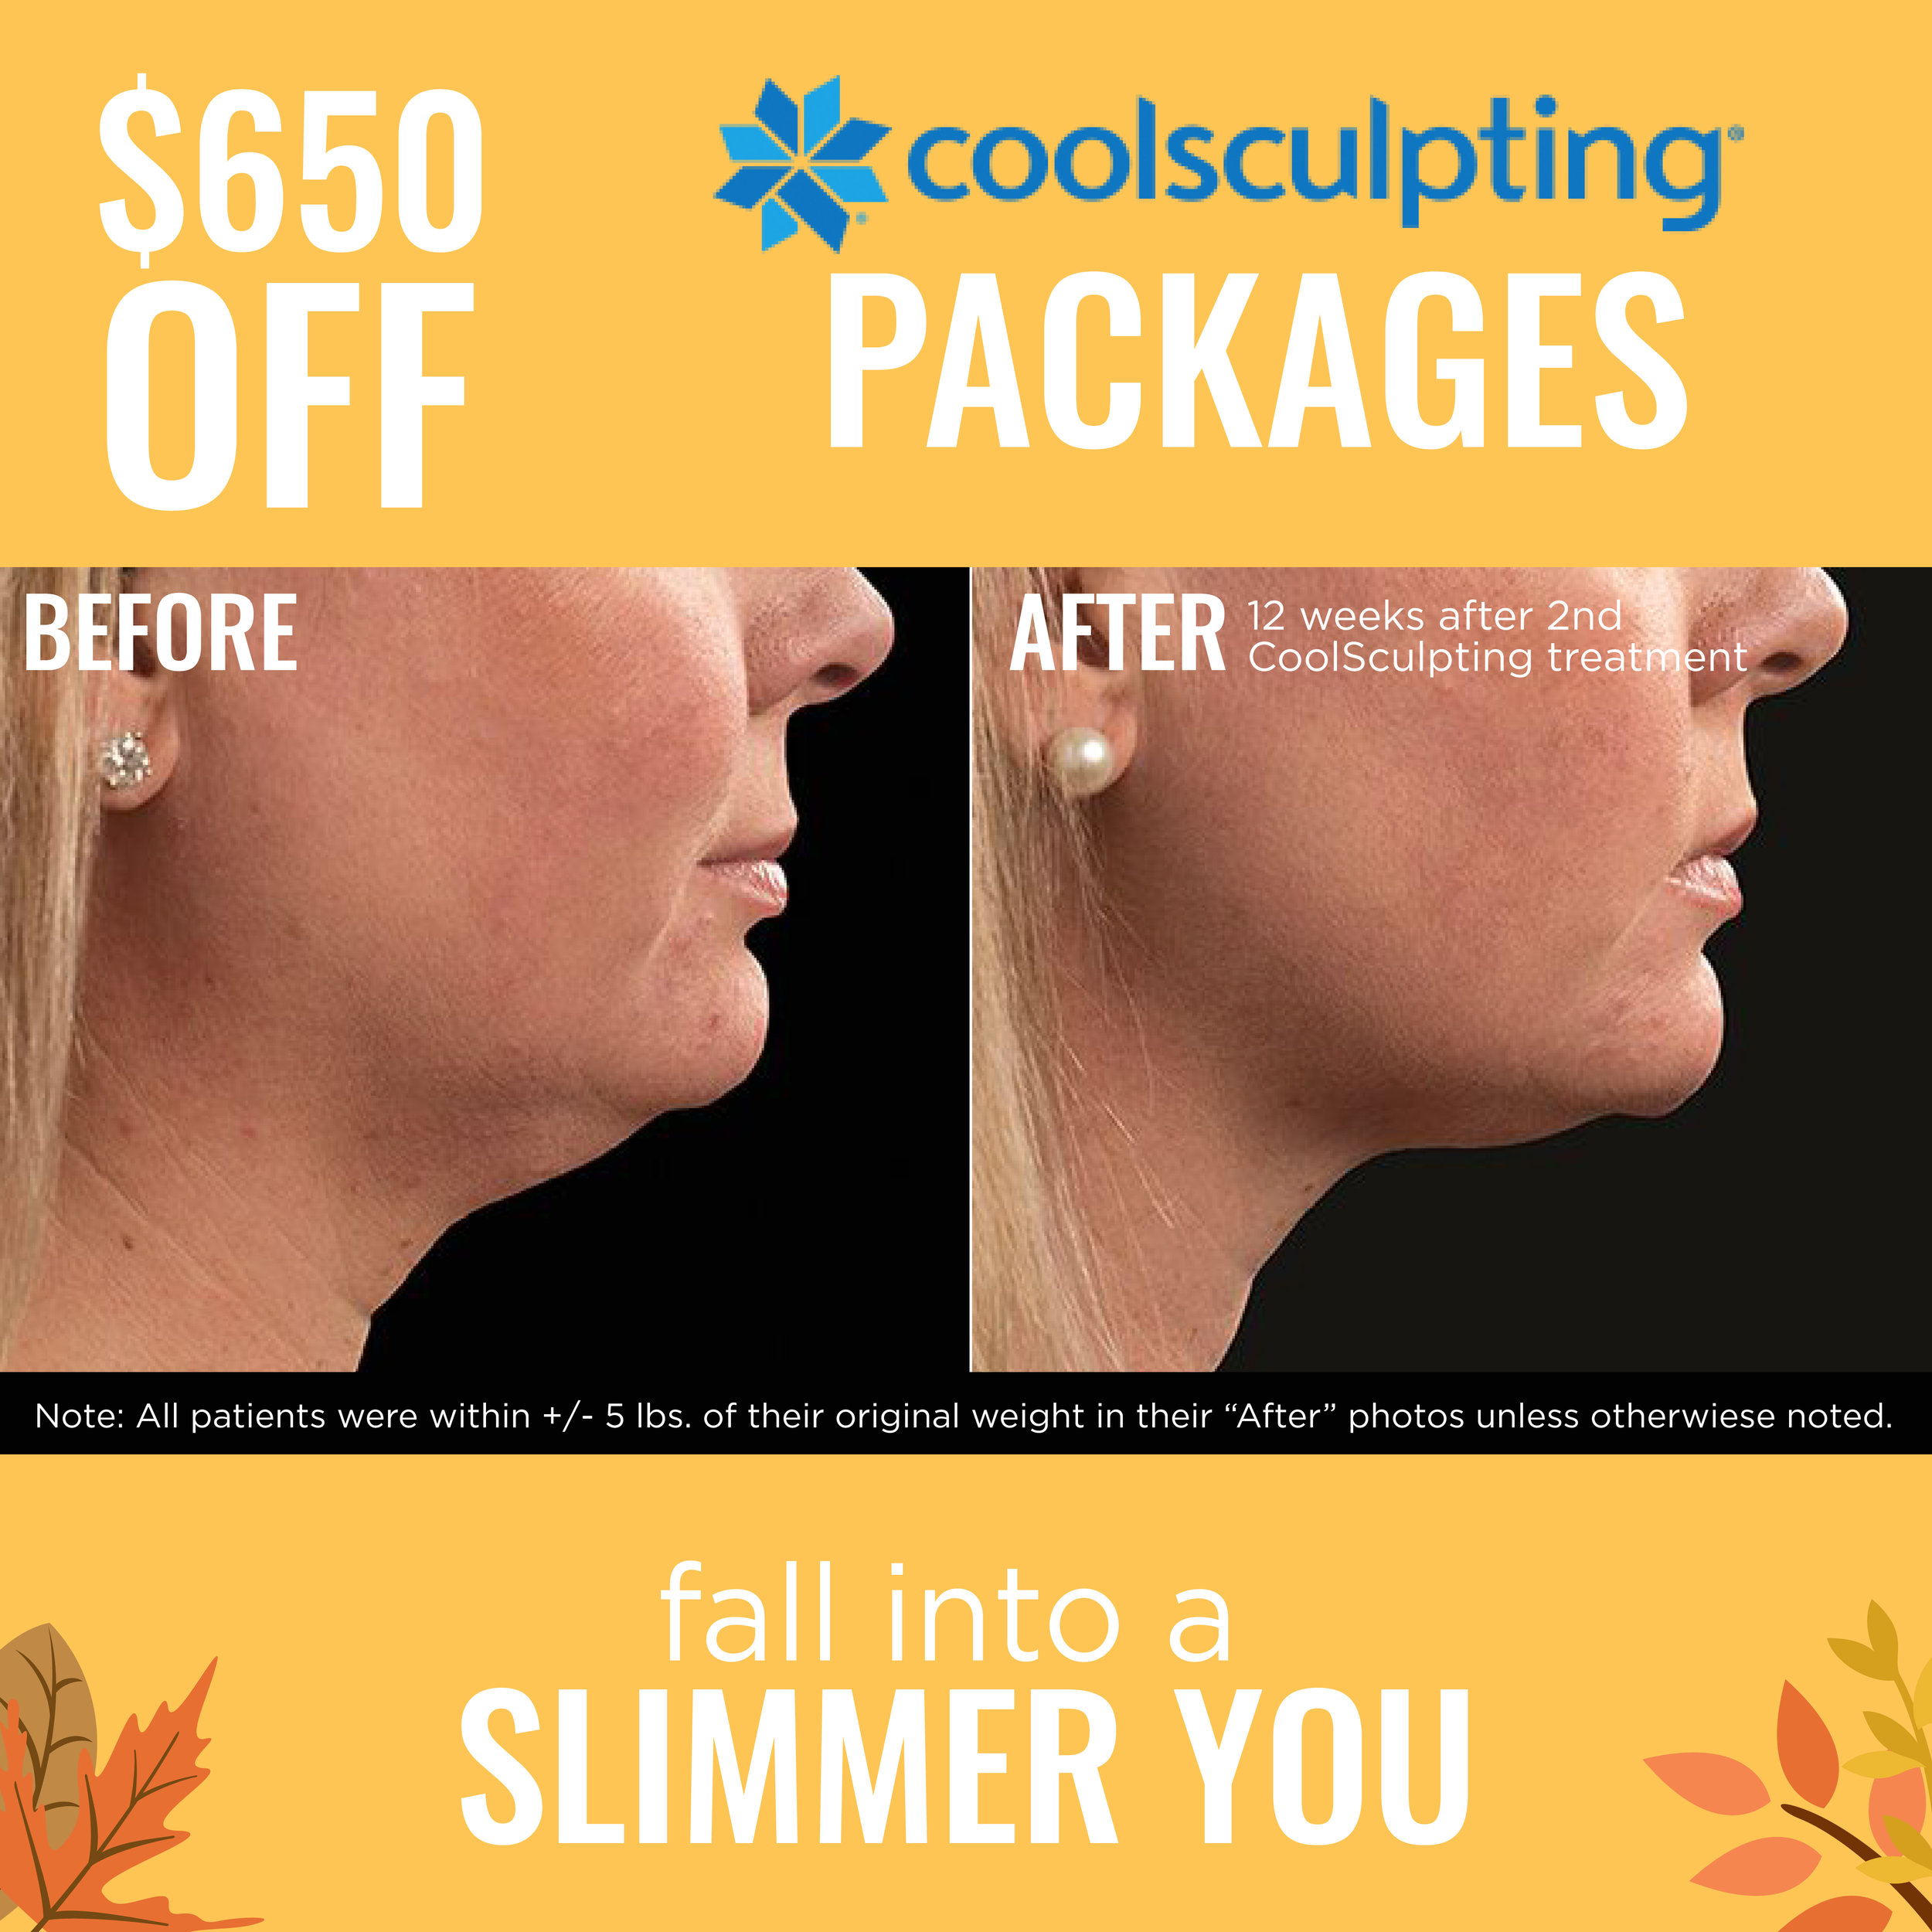 CoolSculpting Specials in San Antonio, TX for men and women with Dr. Sherry at Anew You Med Spa.